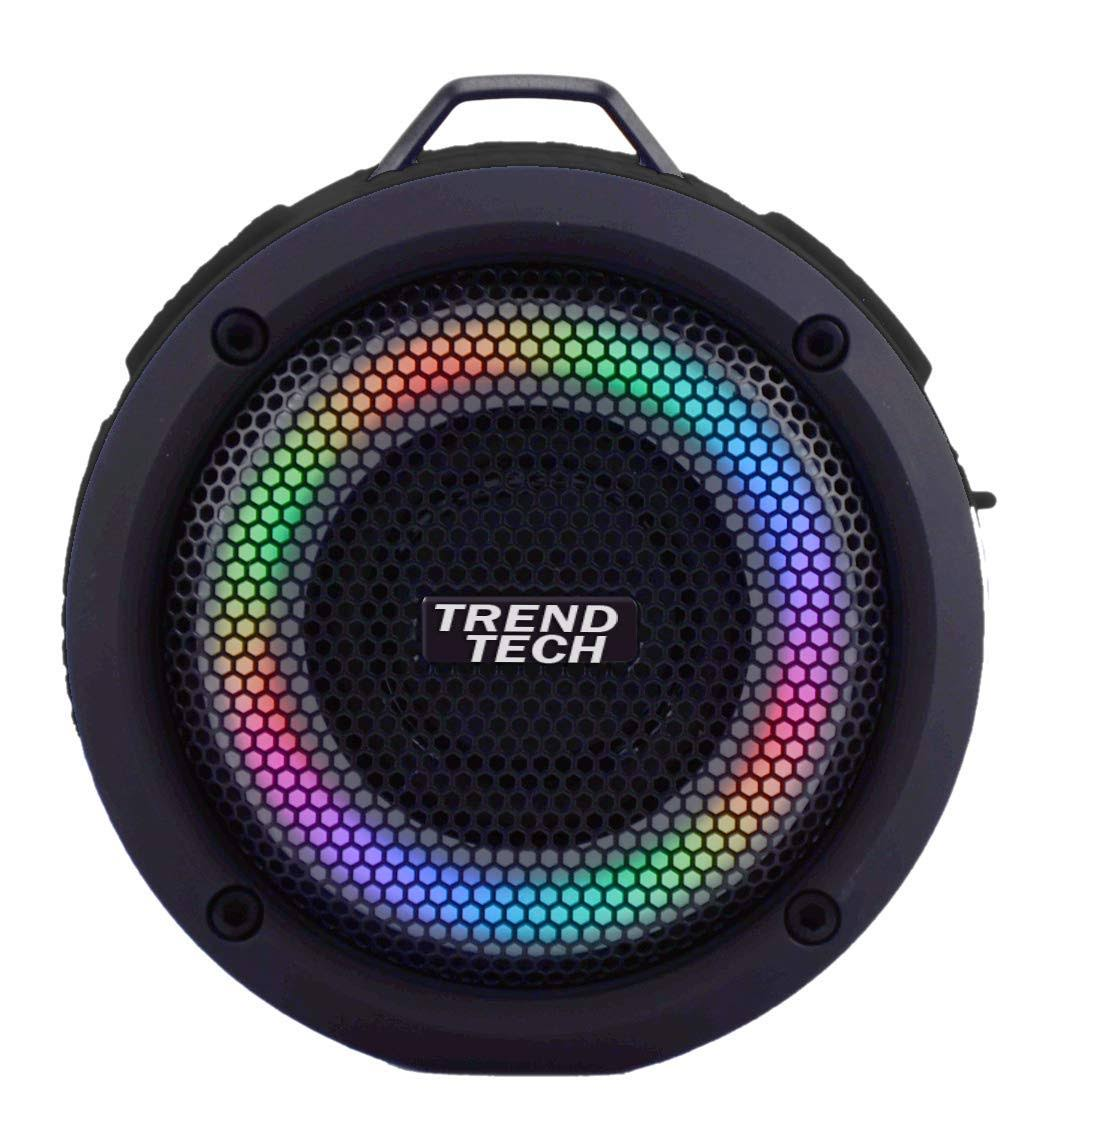 Dorm Blaster Super Sound Waterproof LED Speaker - Light Up, All Weather Bluetooth Speaker